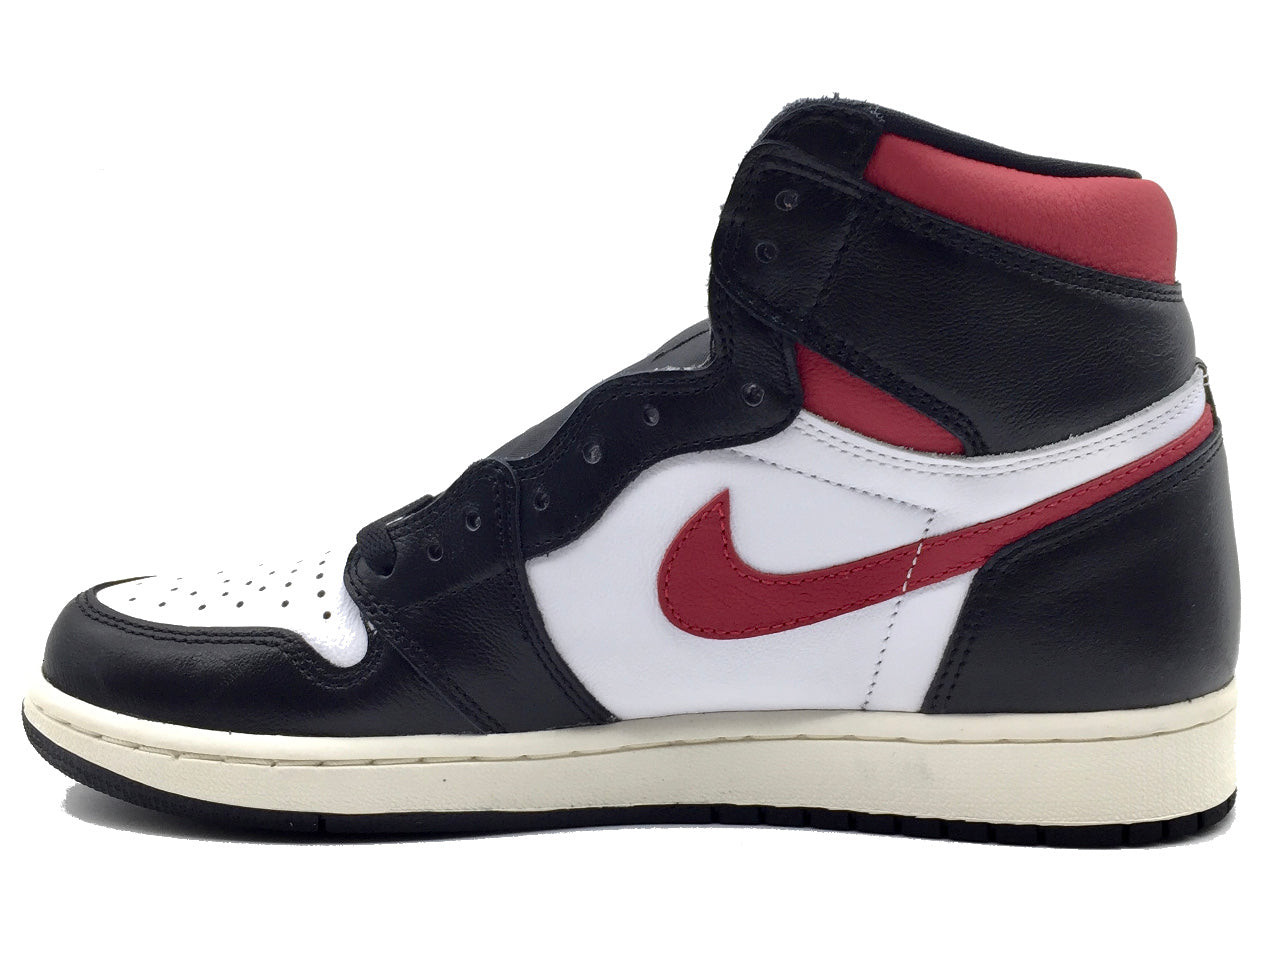 "Nike Air Jordan 1 Retro High ""Black Gym Red"""